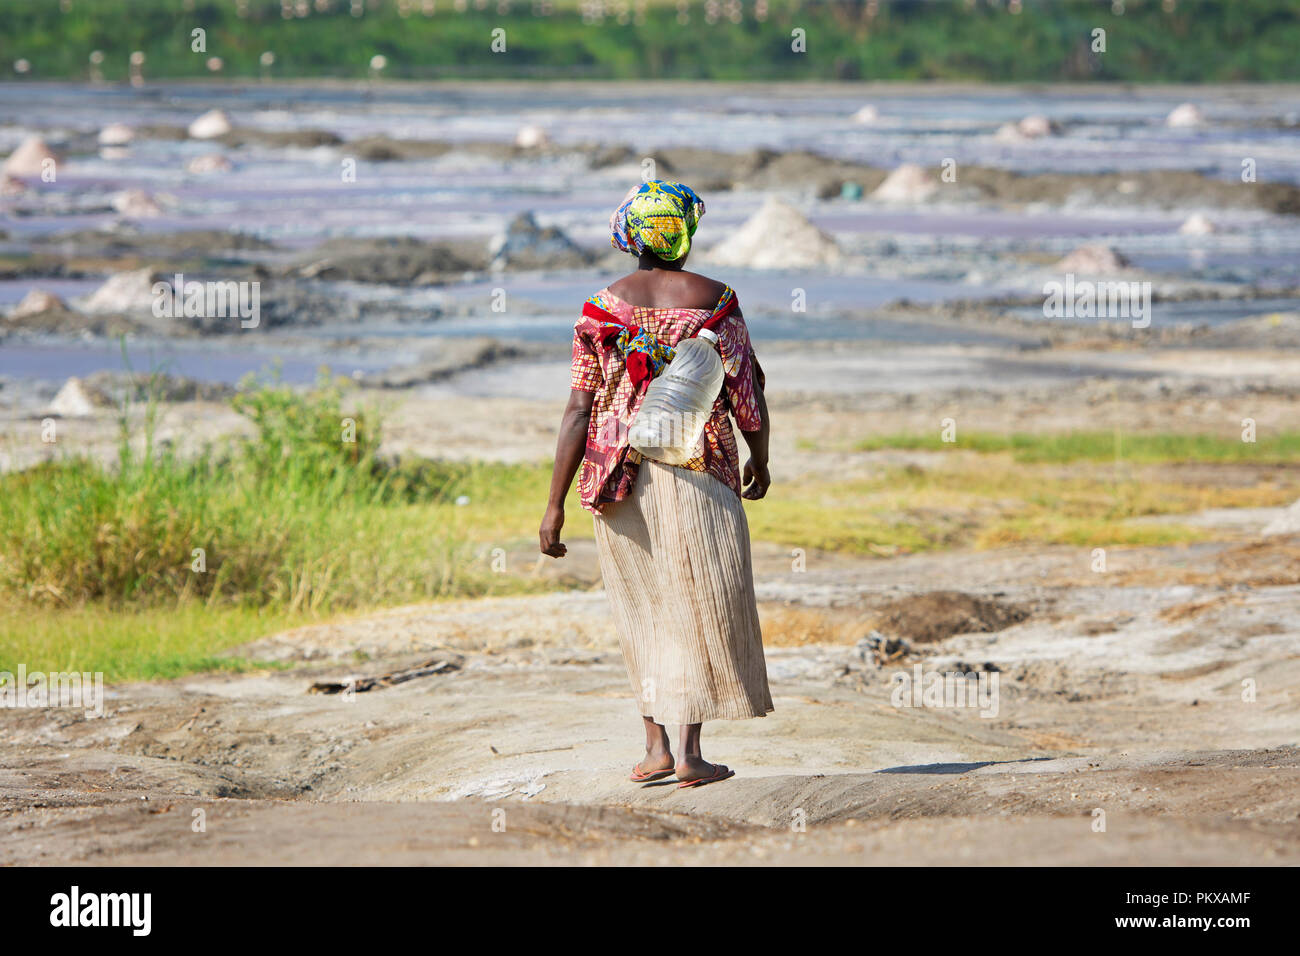 Woman Carrying Water in Plastic Bottle, Uganda, East Africa - Stock Image